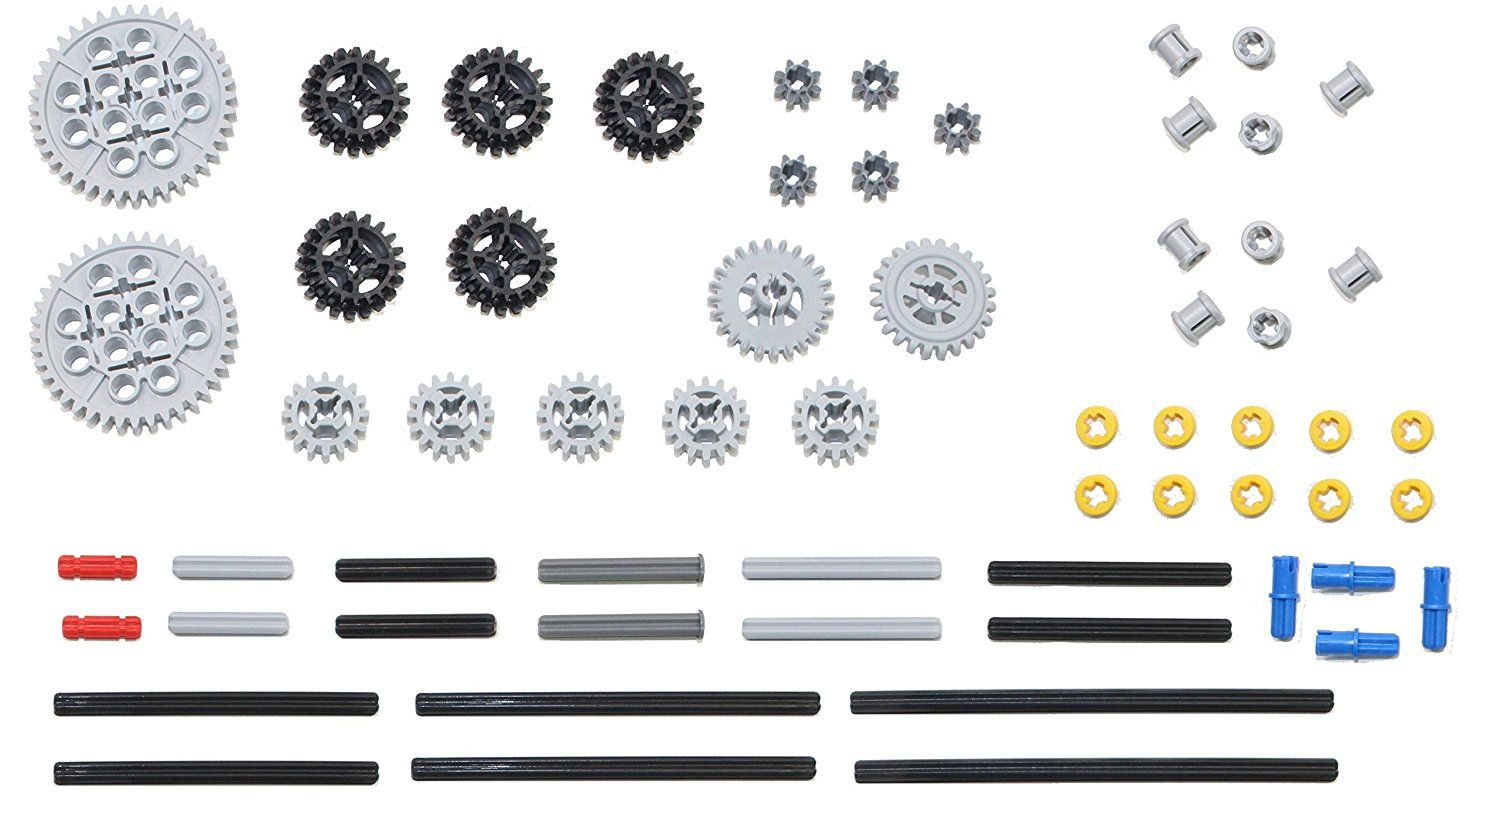 LEGO Technic Mindstorms nxt 46pc gear axle pack SET lot motor power functions